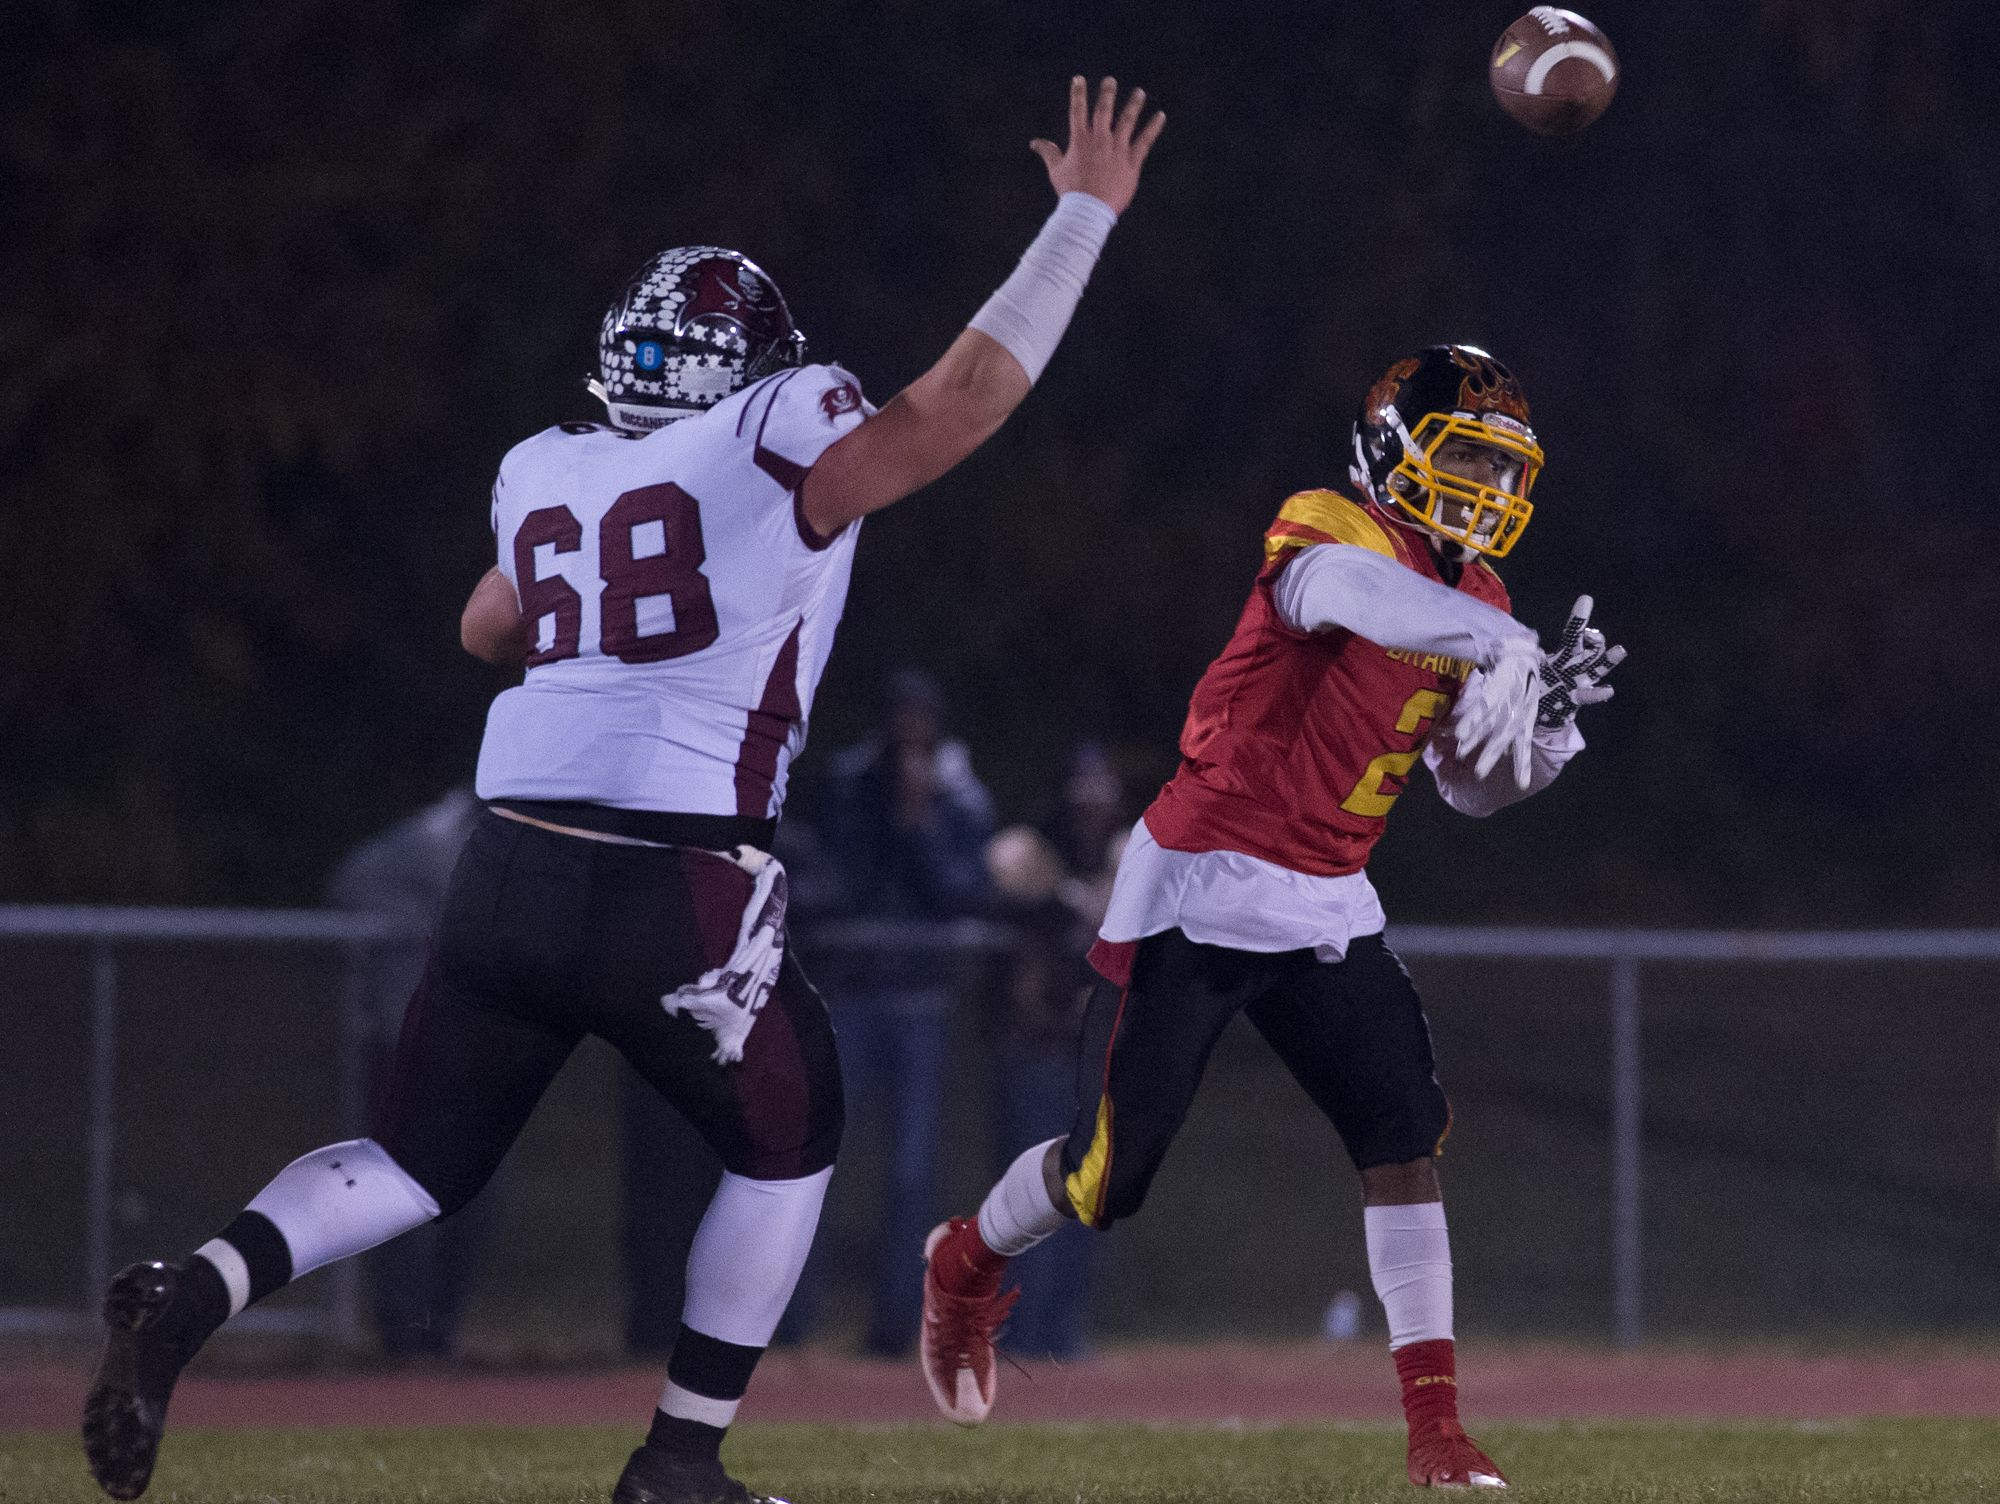 Glasgow's Michael Credle (2) throws a near the sideline in the first quarter against Caravel in the opening round of the DIAA Division II playoffs at Glasgow High School.